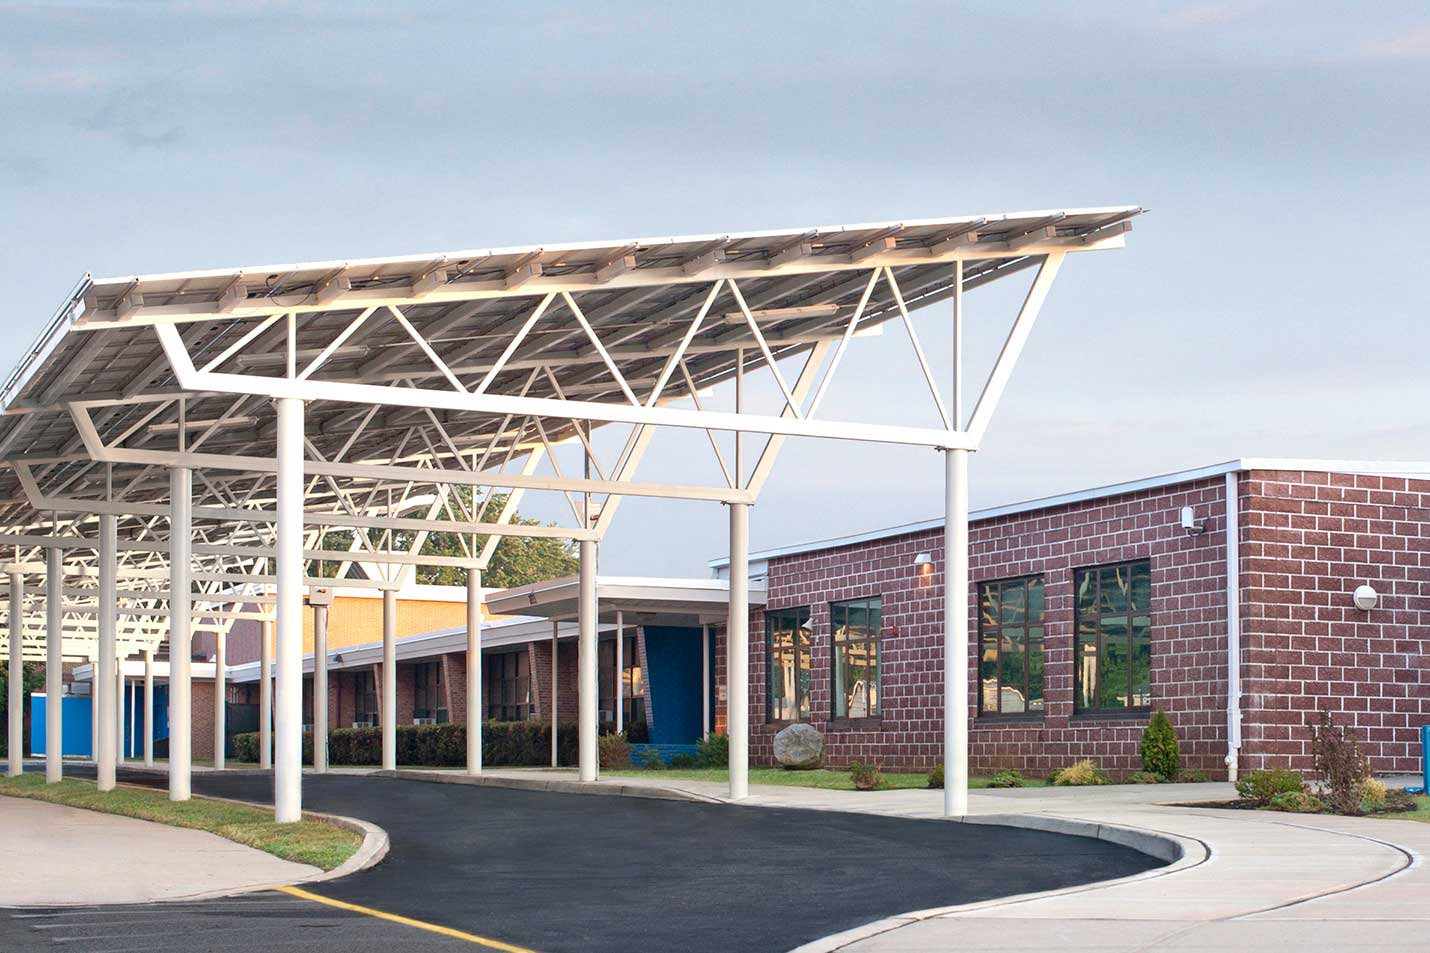 Solar - DESIGN/BID/BUILD (DBB) DELIVERY PROCESSPOWER PURCHASE AGREEMENT (PPA) DELIVERY PROCESSSOLAR DESIGN: TREES, CANOPIES, SHADE STRUCTURES, BUSGRANT SECURINGCONSTRUCTION ADMINISTRATIONOur Solar projects have begun the process of saving our clients millions, including clients such as:Absecon Township Board of Education (1 MW)Holmdel Township Board of Education (1.88 MW)Clinton Township Board of Education (2.2 MW)Brookdale Community College (1.4 MW)Union Beach Board of Education (0.5 MW)Shore Regional High School (1 MW)Jackson Board of Education (2.6 MW)Salem County Vocational Technical School (1.2 MW)South Bound Brook School District (0.5 MW)